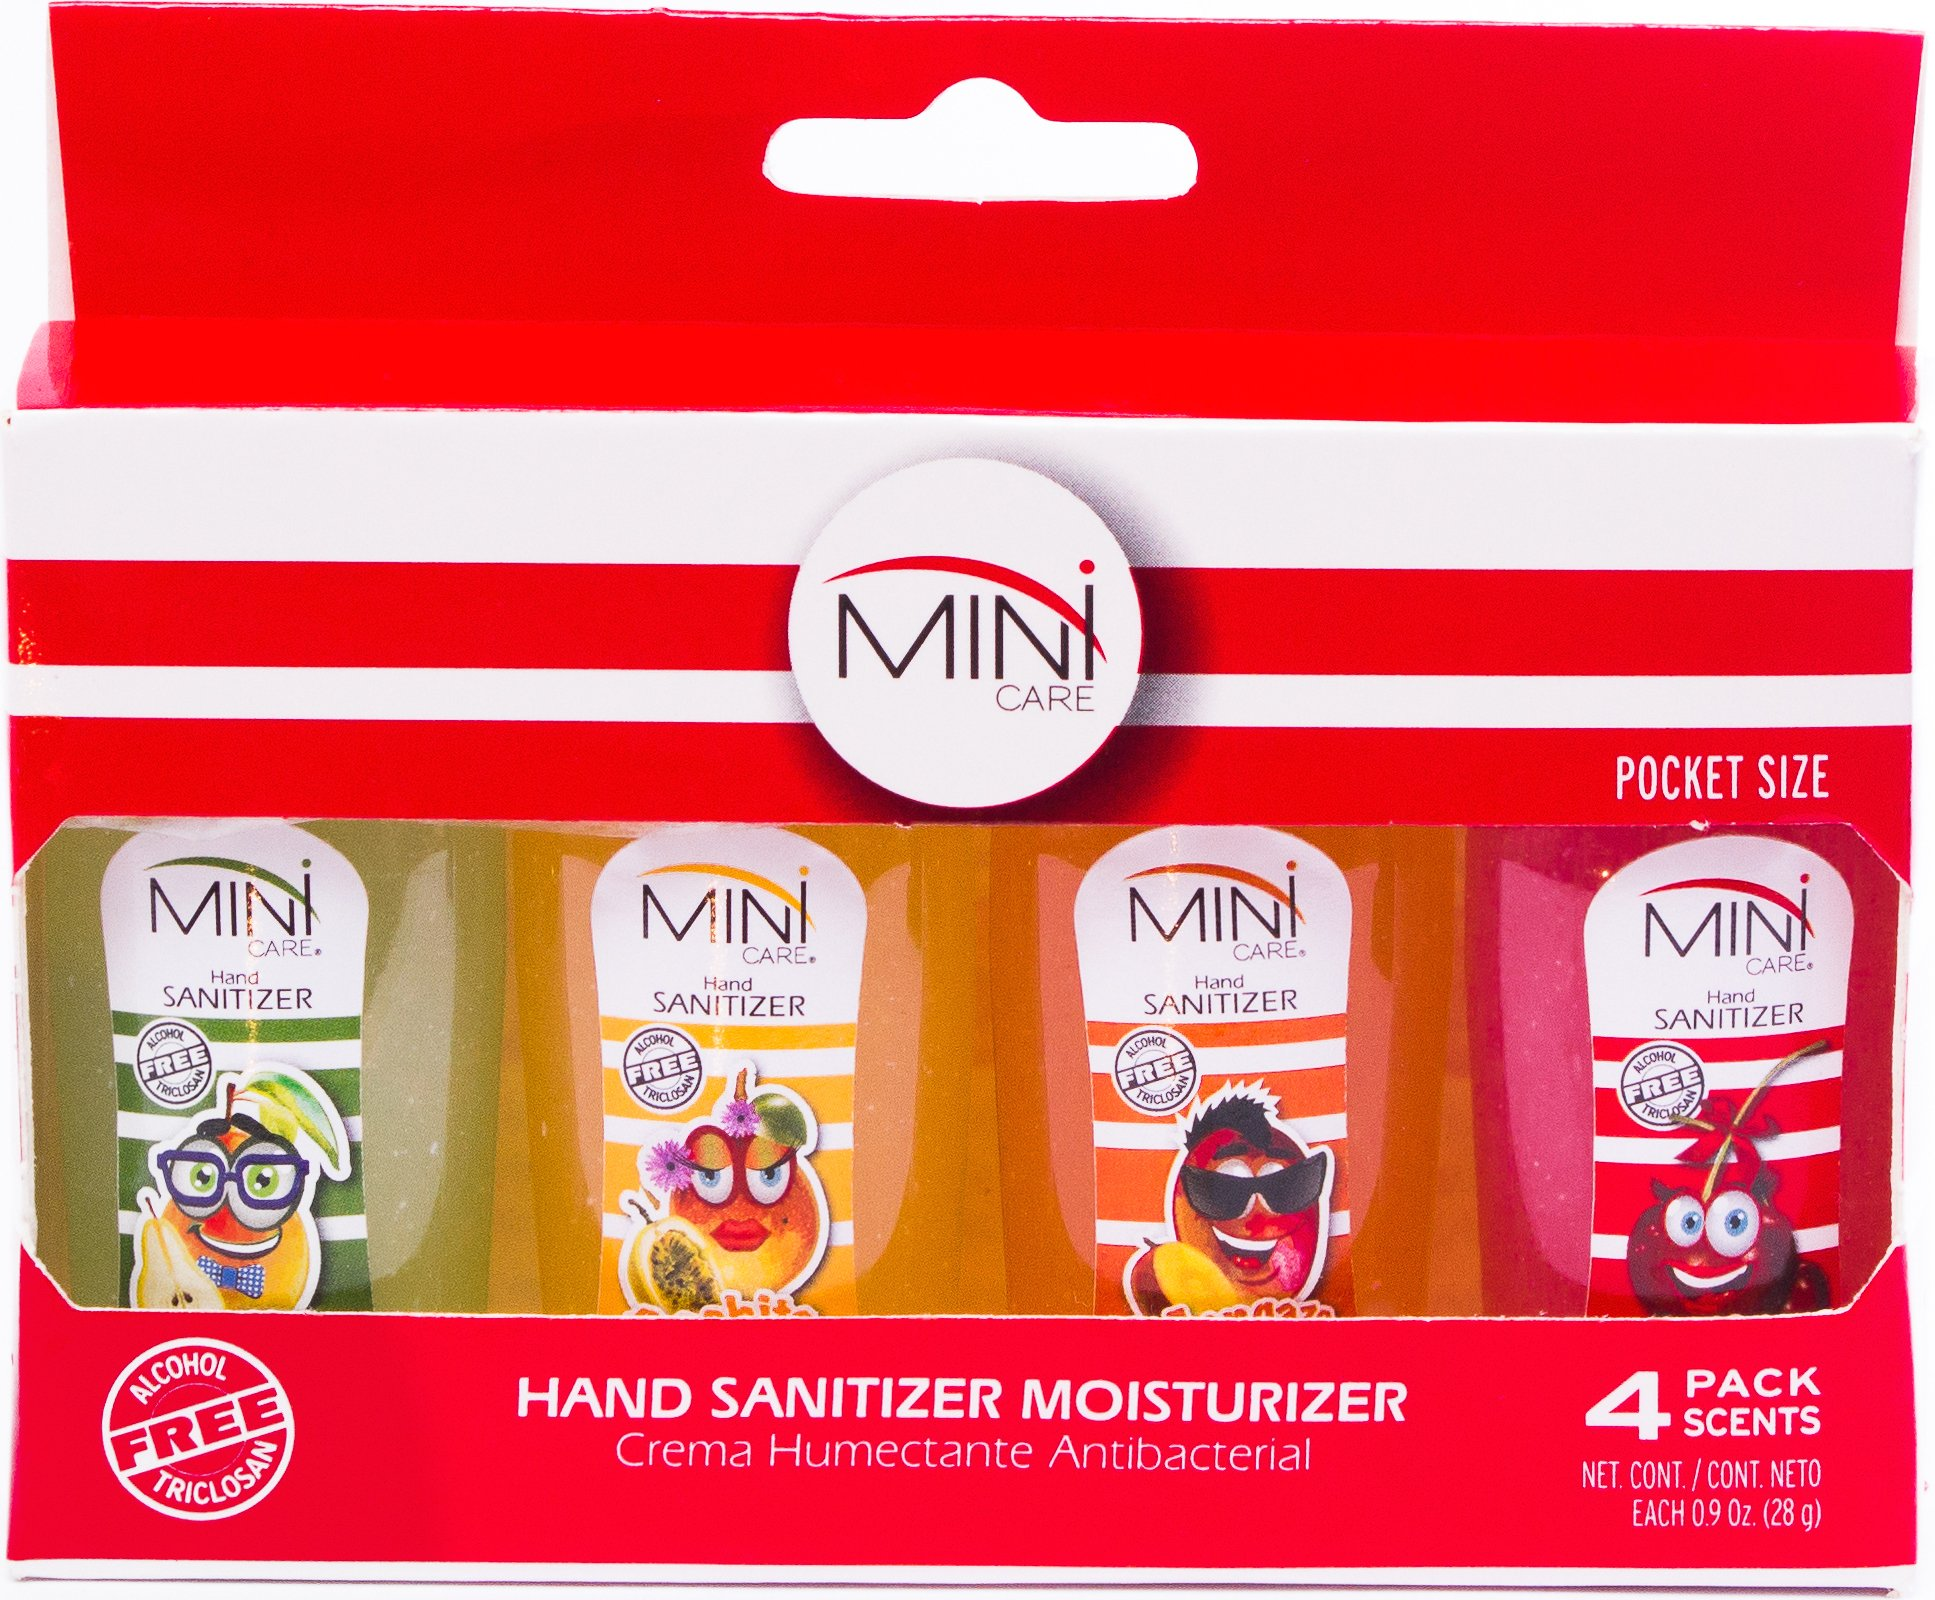 MINi Care Kids Specialized Hand Sanitizer for Kids Alcohol Free - Special Edition Box - (Case of 12) (MixW)